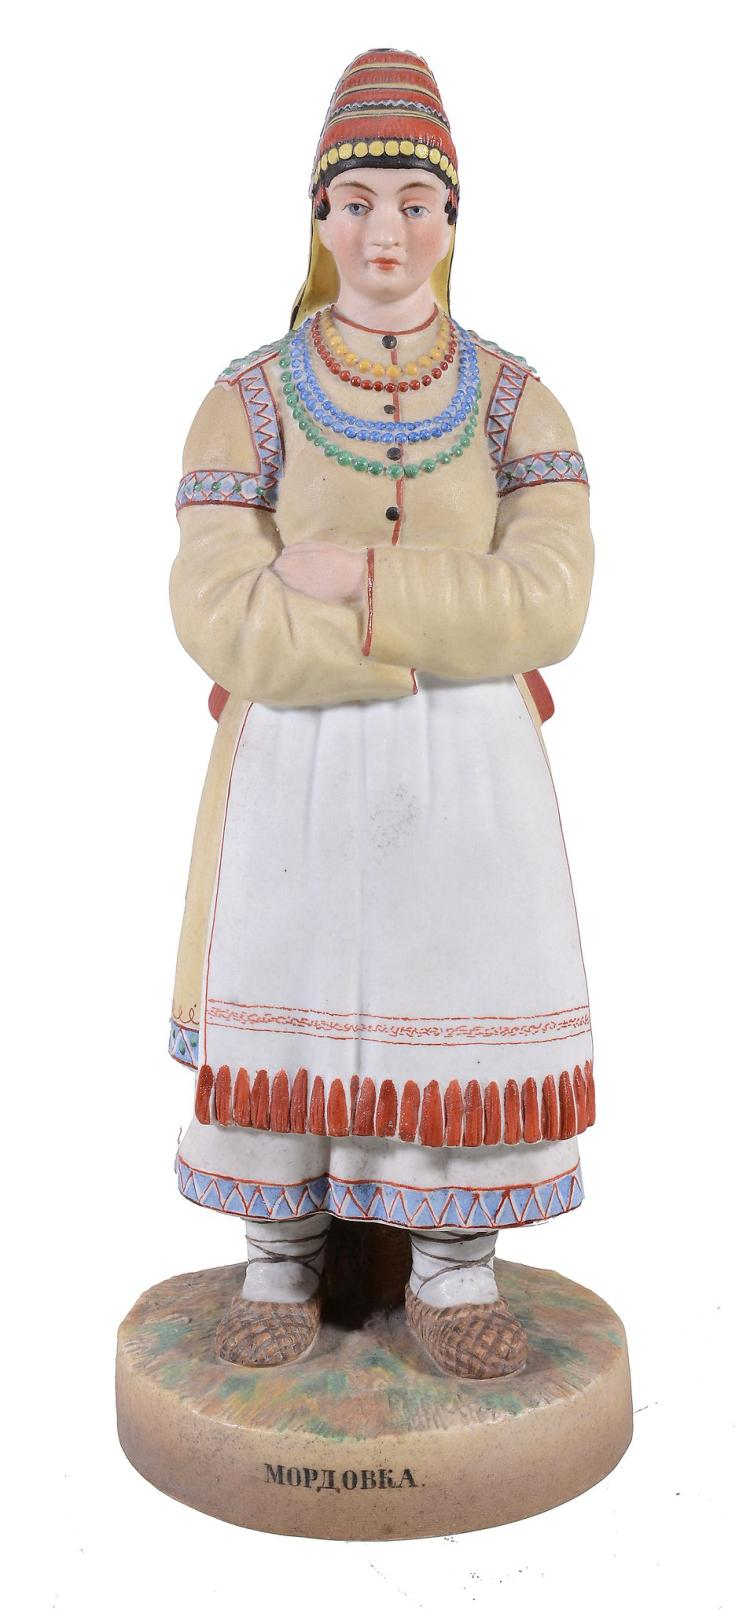 A Moscow biscuit porcelain figure of a woman in peasant dress